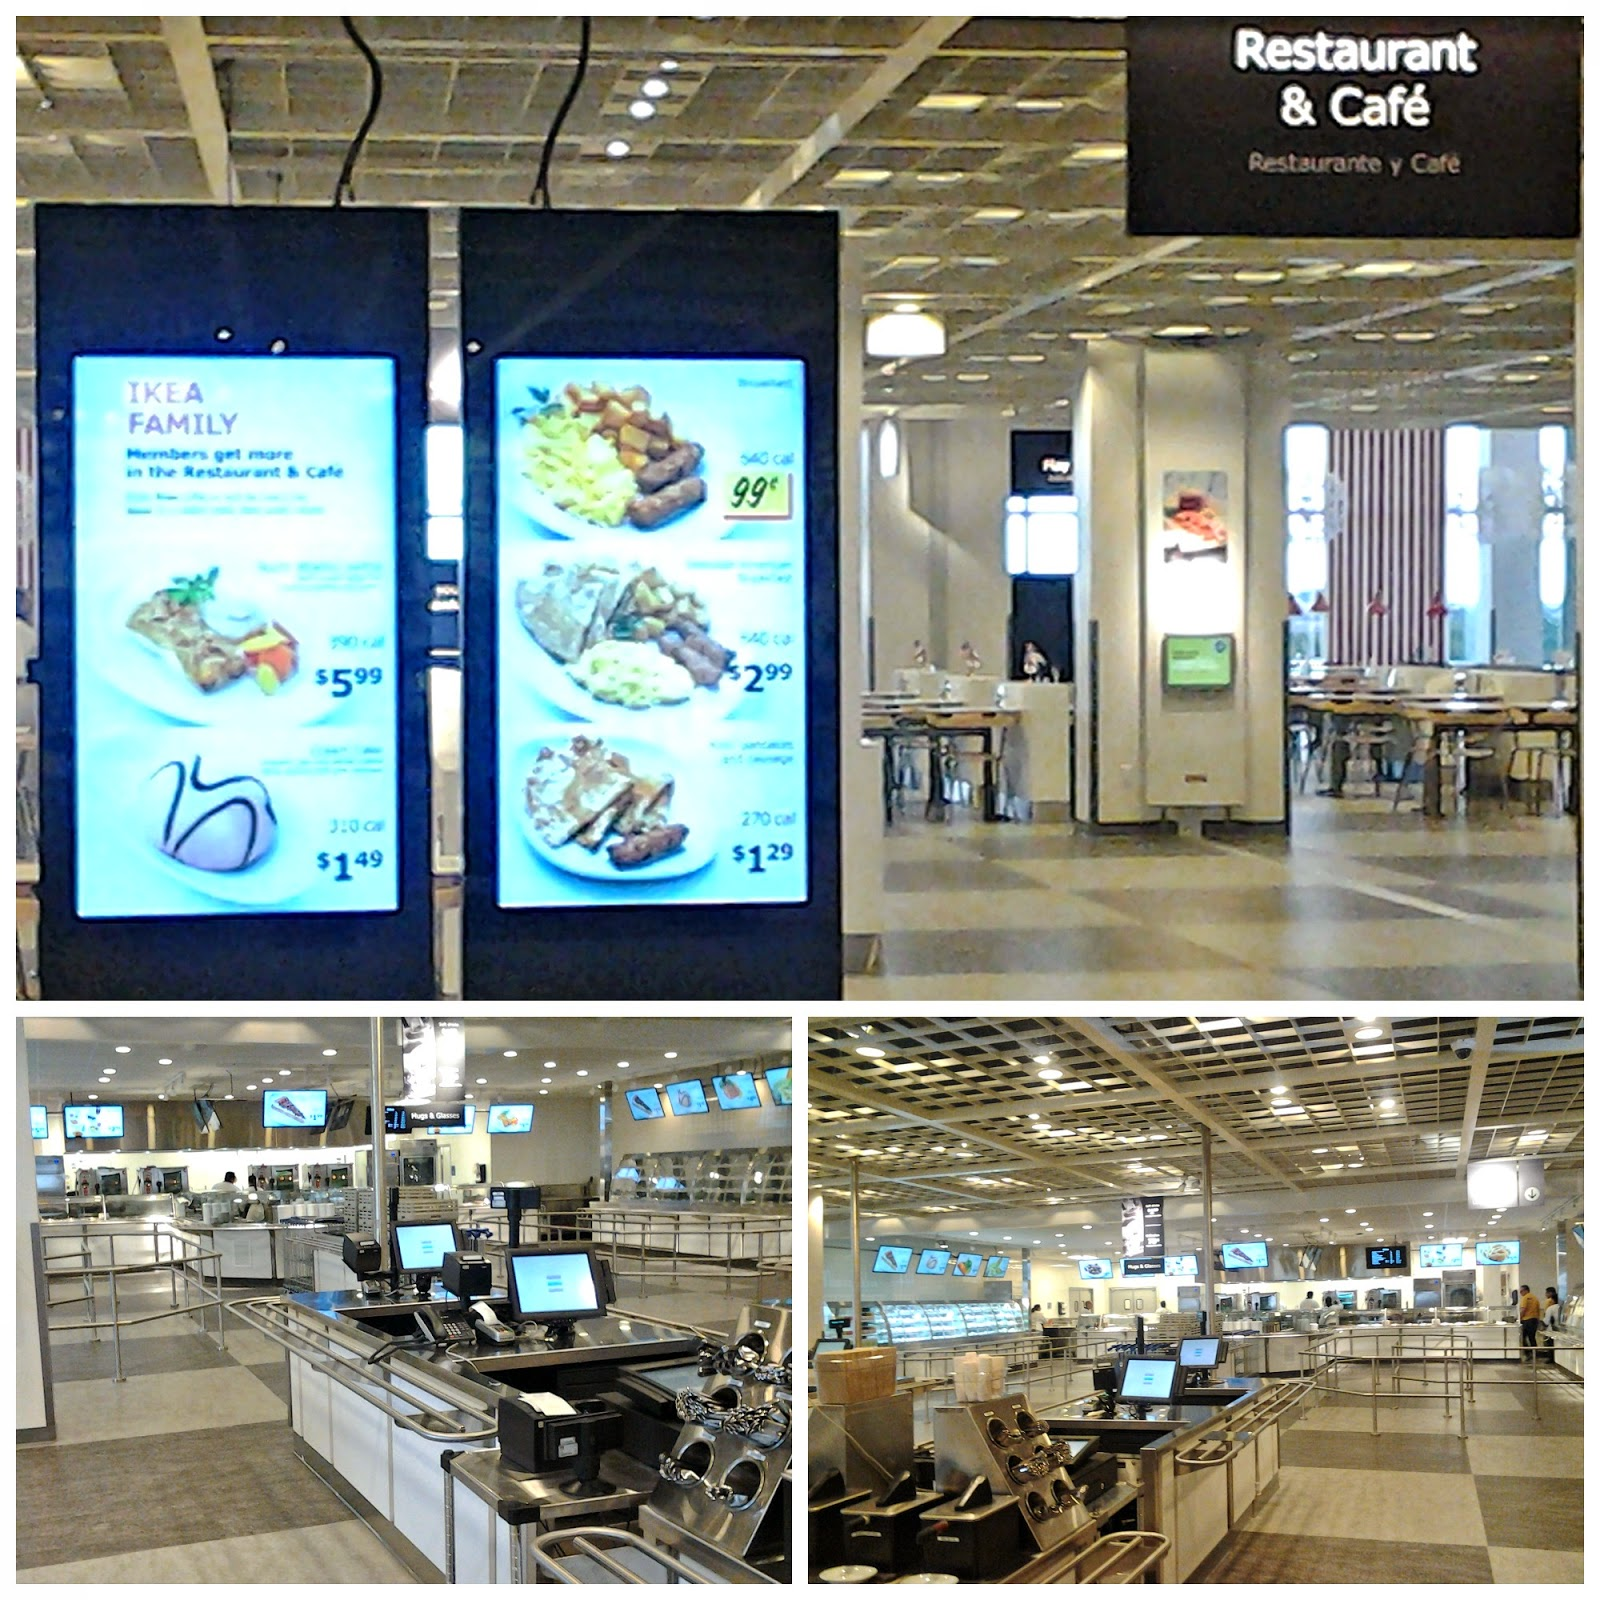 Ikeamiami bb 39 s first babushka 39 s baile for Restaurant ikea miami